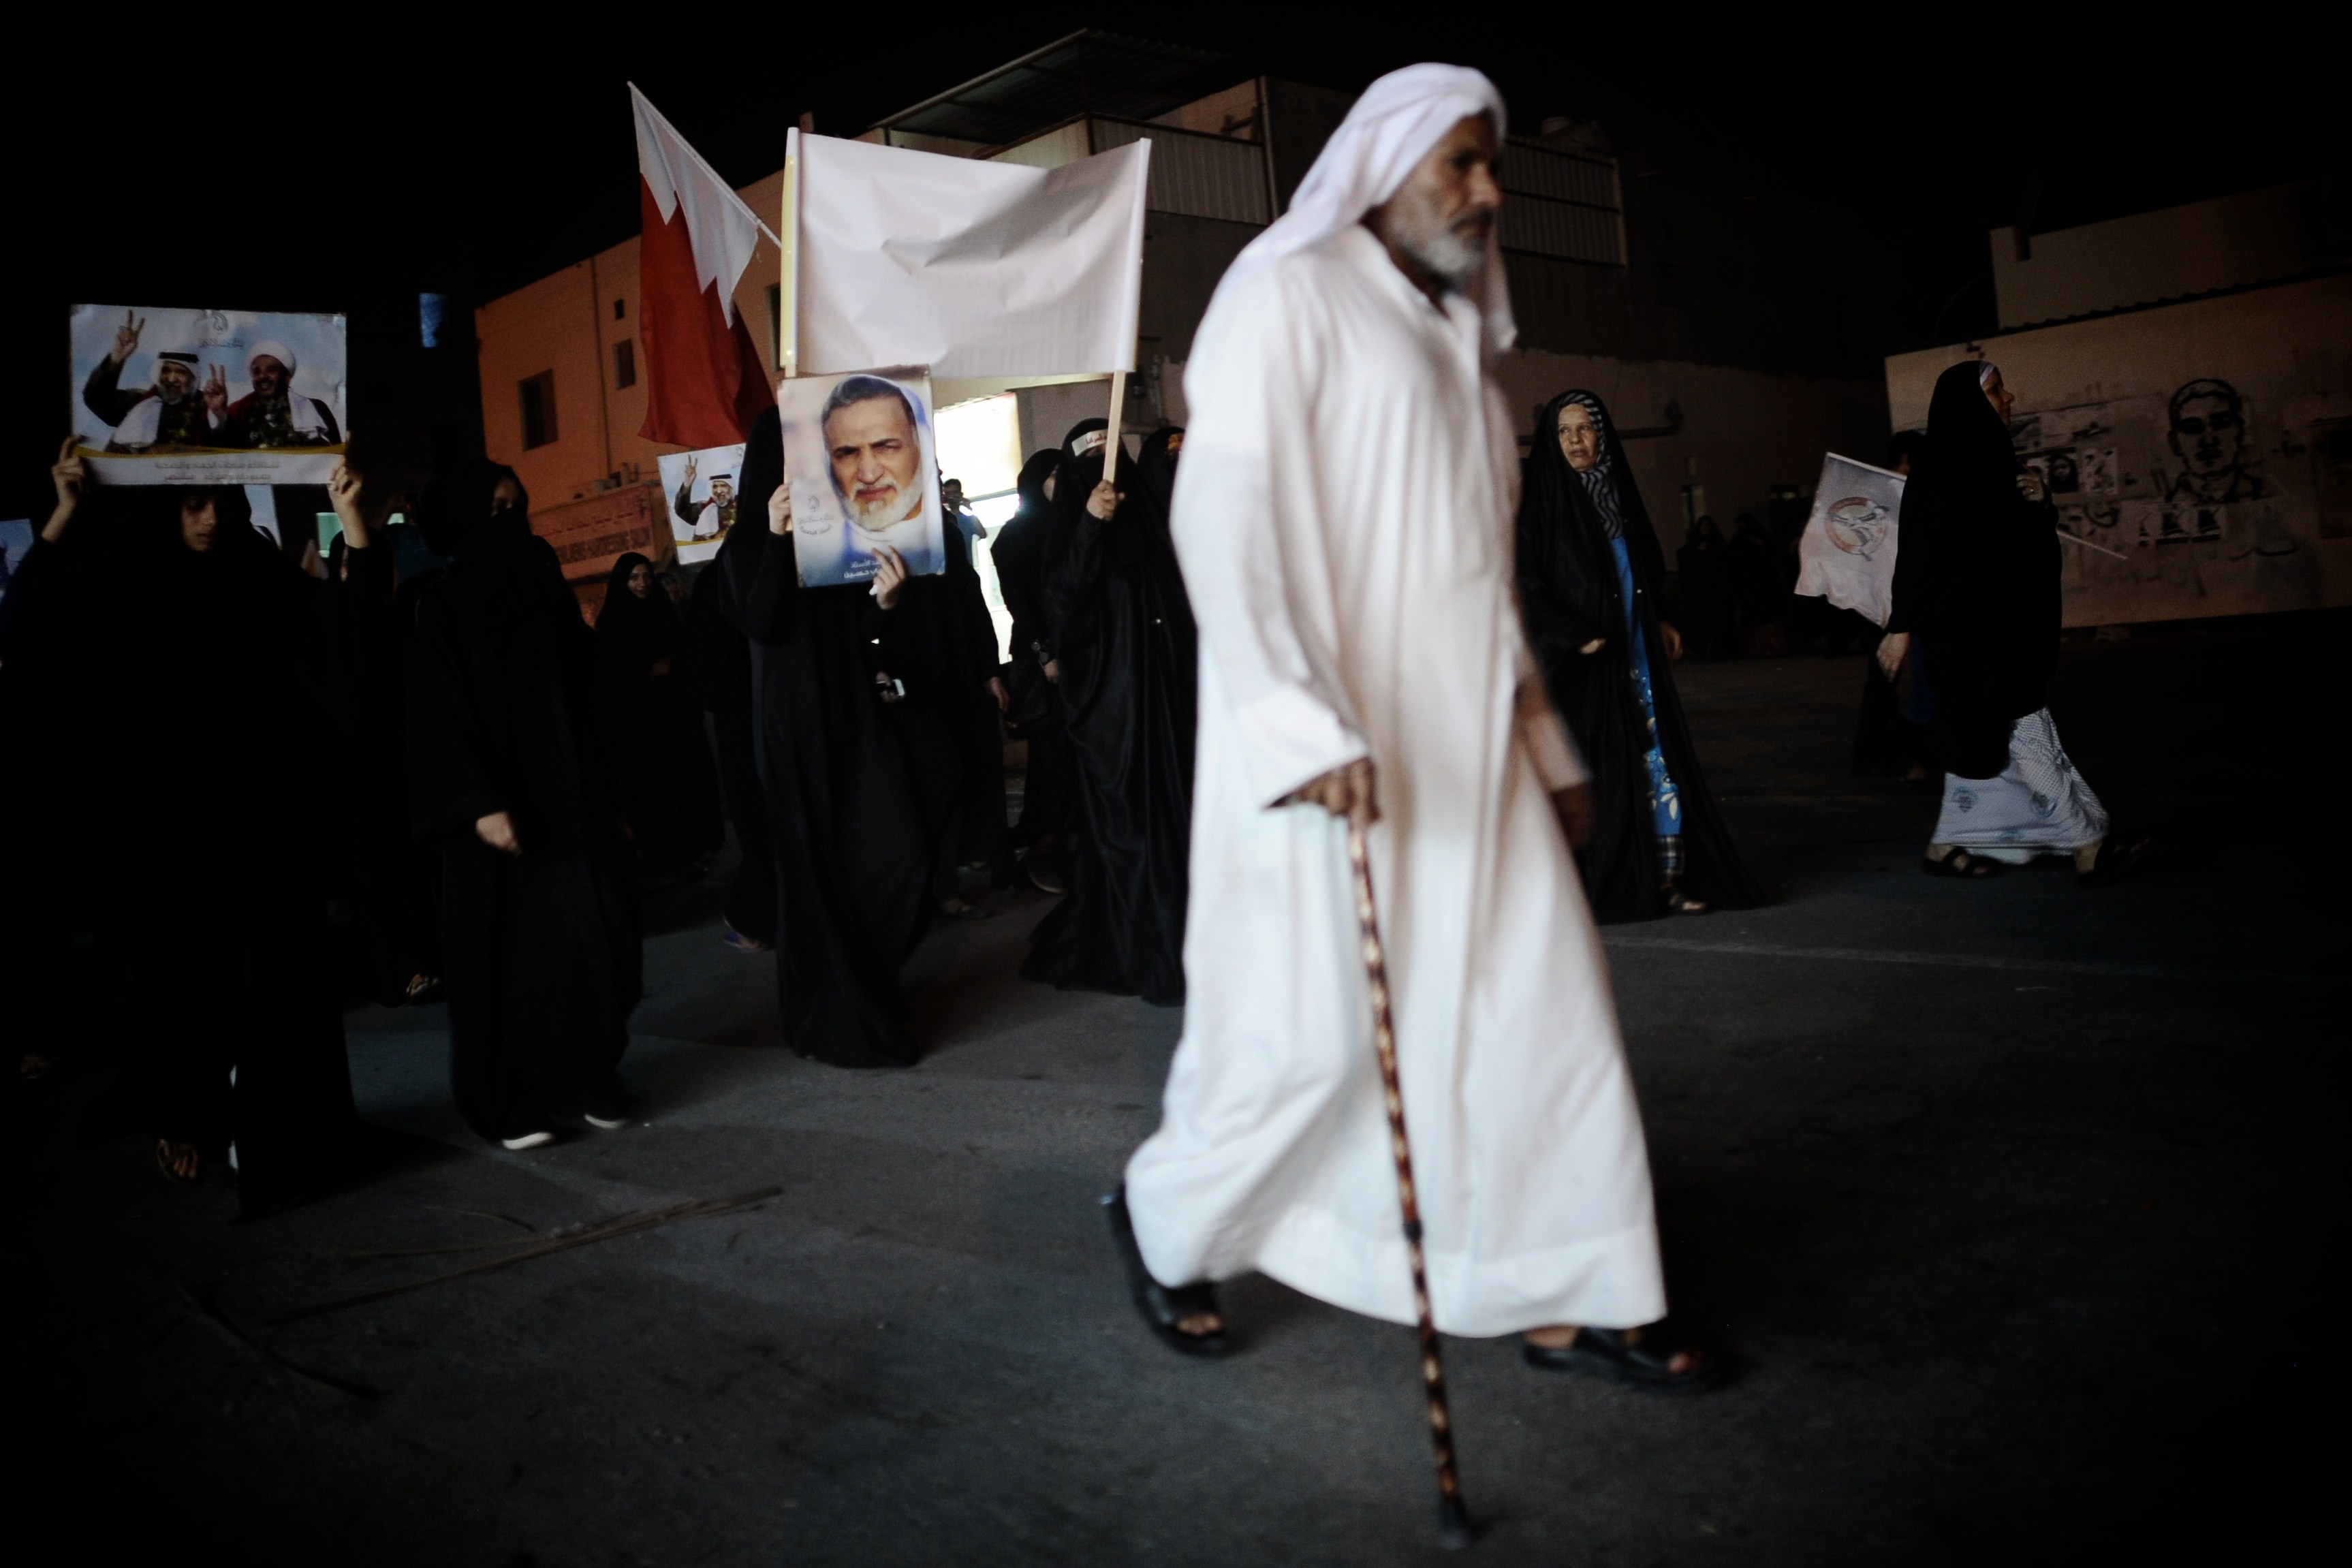 Bahraini Shi'a Muslims take part in an anti-government demonstration in the village of Sitra, South of Manama on 30 July (Photo: AFP /Mohammed Al-Shaikh)